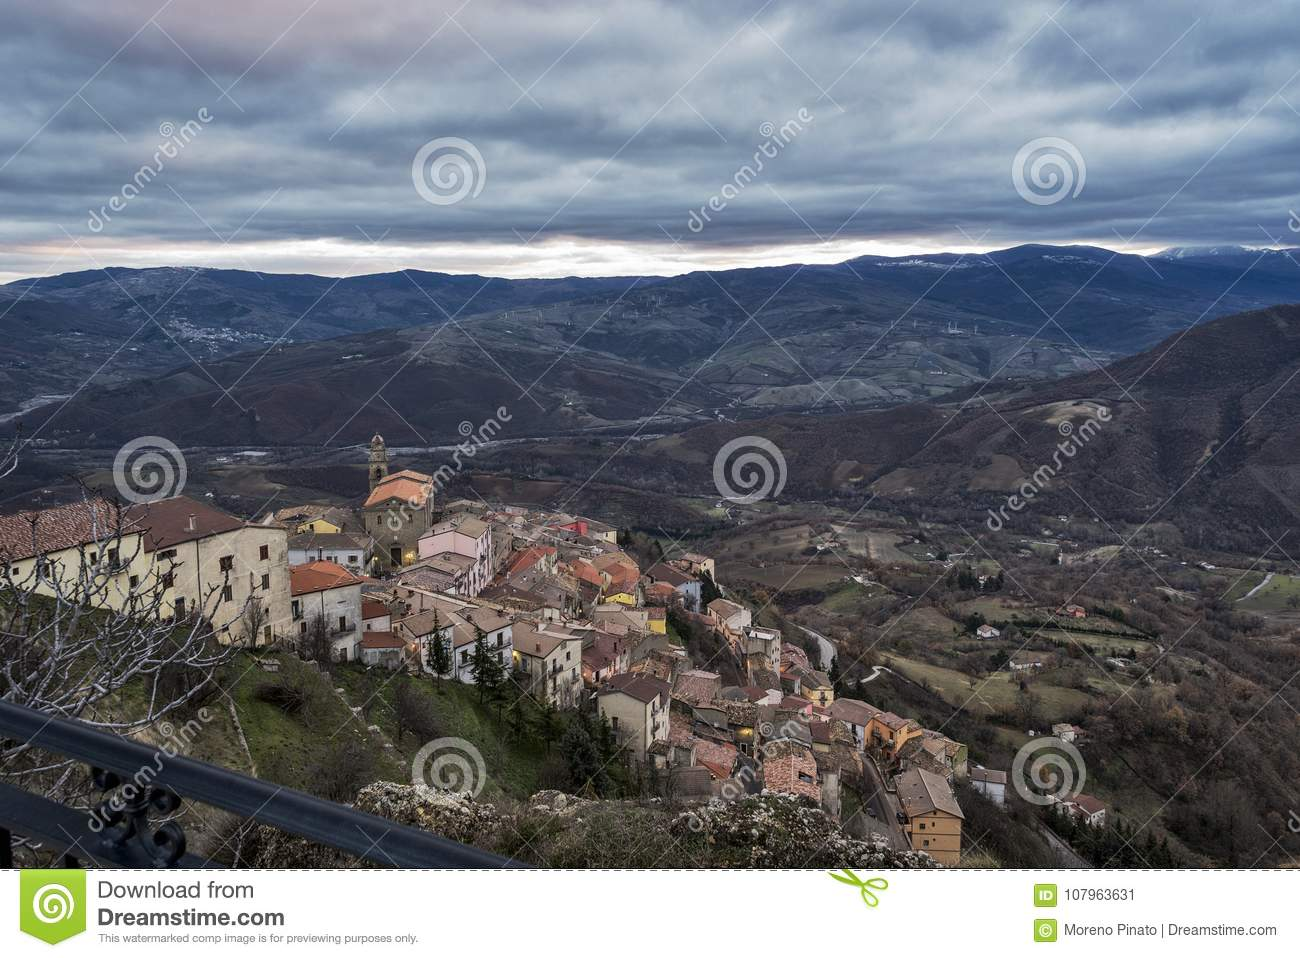 Anzi Village In Province Of Potenza Stock Image - Image of ... on map of south carolina area, map of connecticut area, map of galilee area, map of quebec area, map of botswana area, map of madagascar area, map of virgin island area, map of kashmir area, map of cambodia area, map of provence area, map of bulgaria area, map of kenya area, map of medford area, map greece area, map of qatar area, map of eastern mediterranean area, map of sudan area, map of trieste area, map of arkansas area, map of ukraine area,